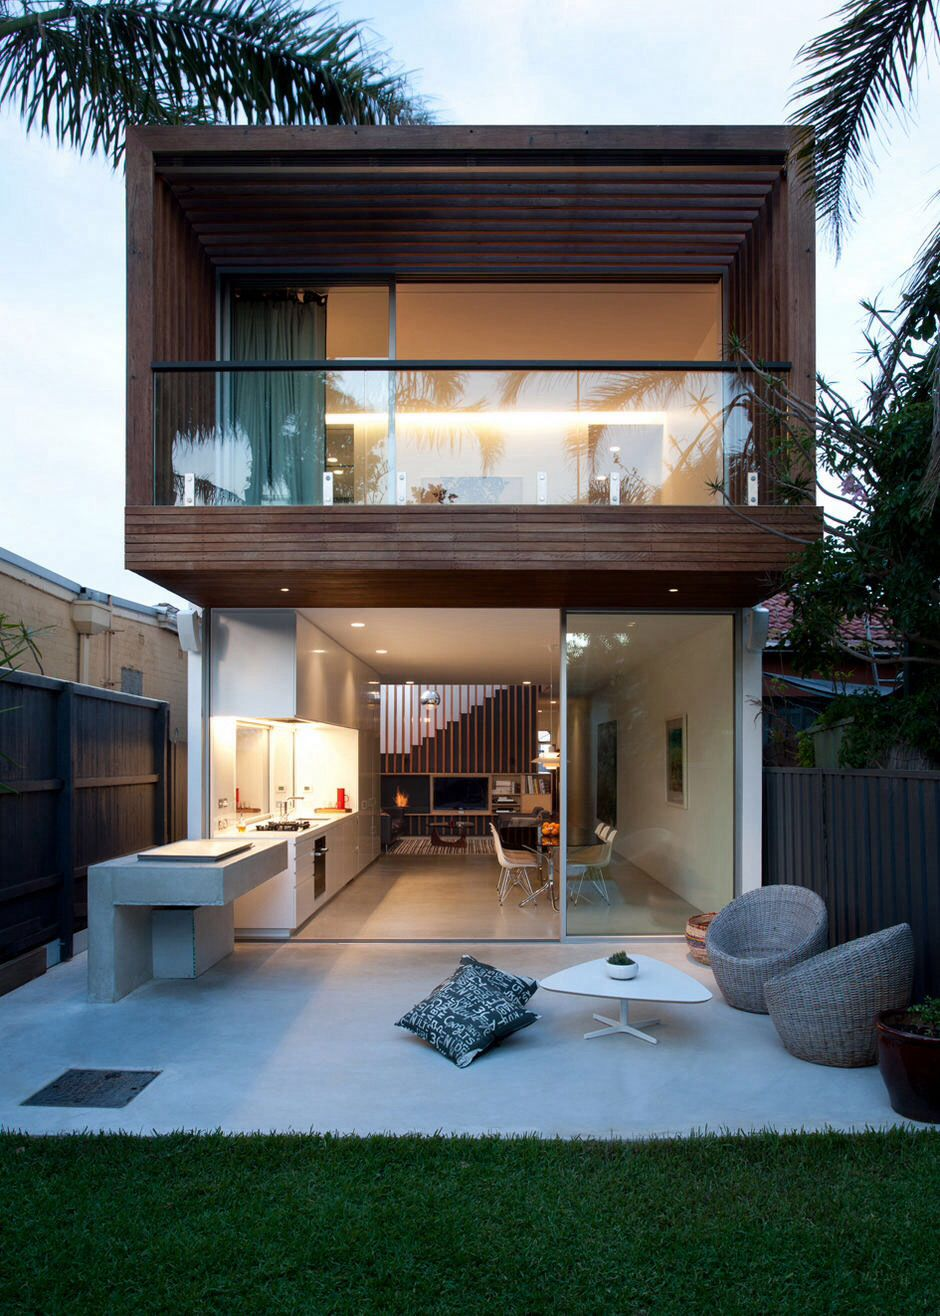 Victorian house colorful interiors for a classy exterior south yarra - Exterior Modern Compact House